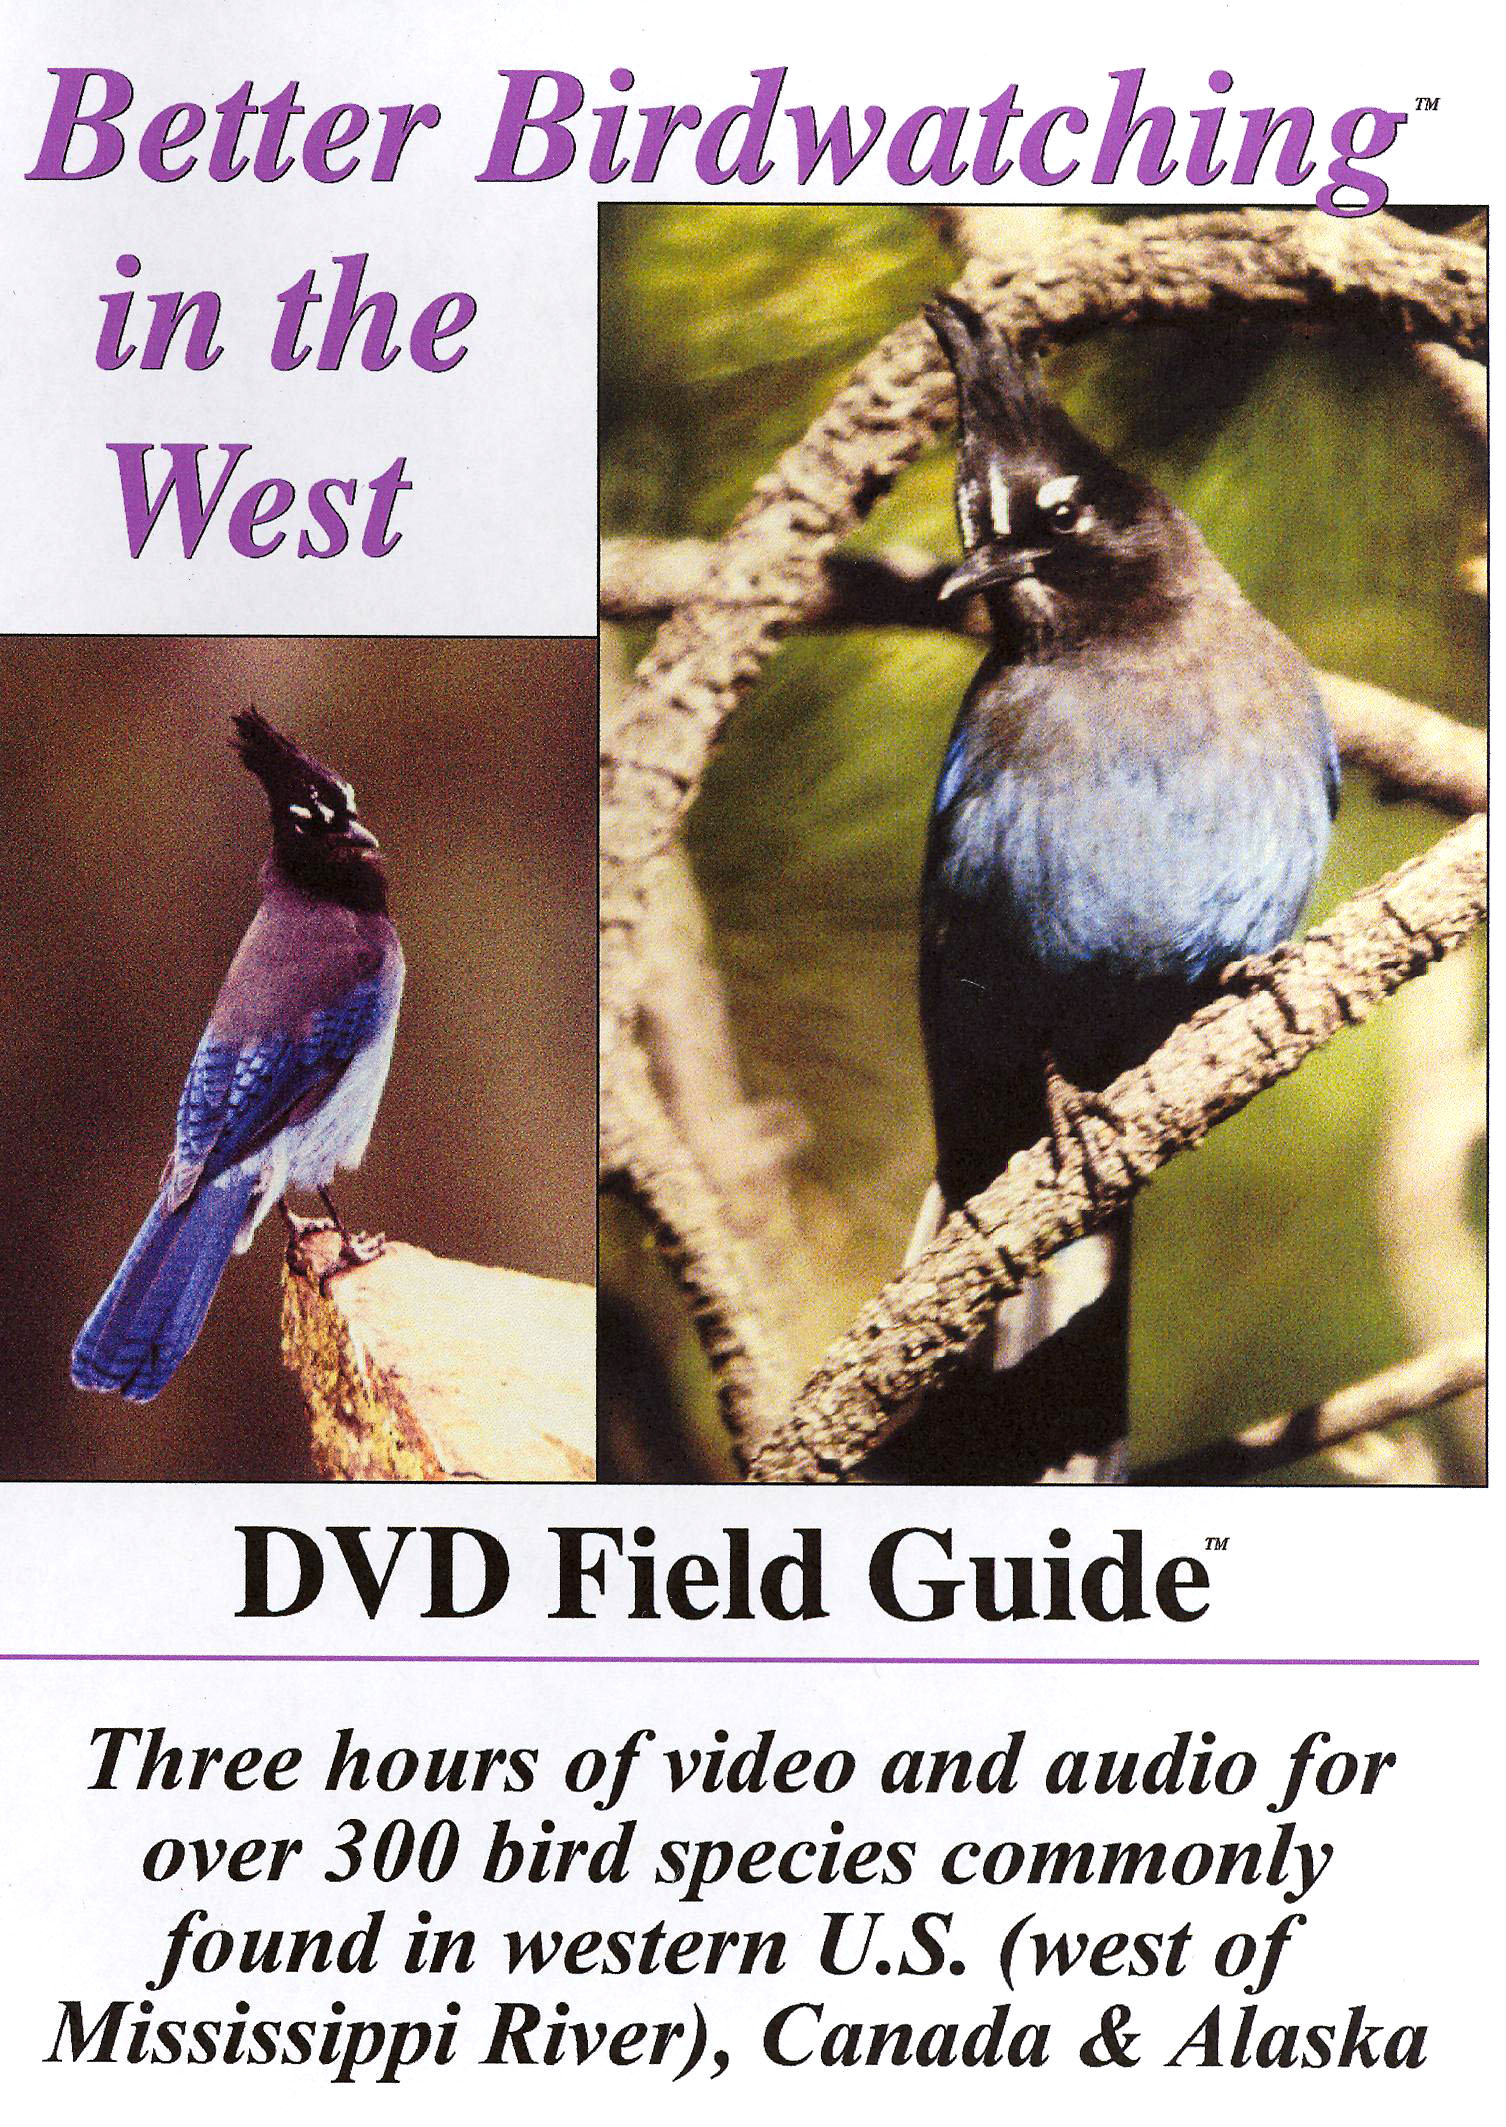 Better Birdwatching in the West